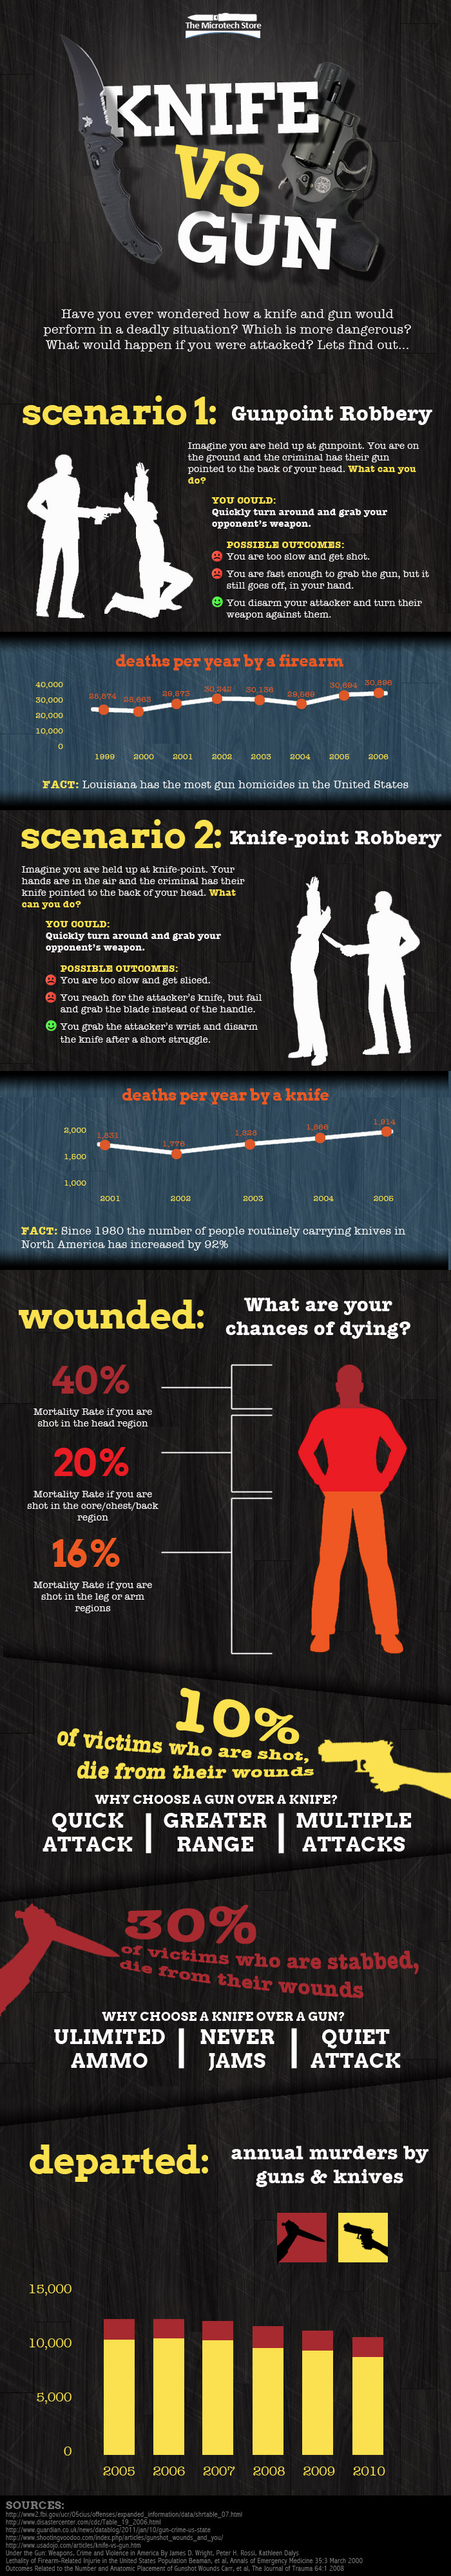 Knife VS Gun: Which Is More Dangerous?